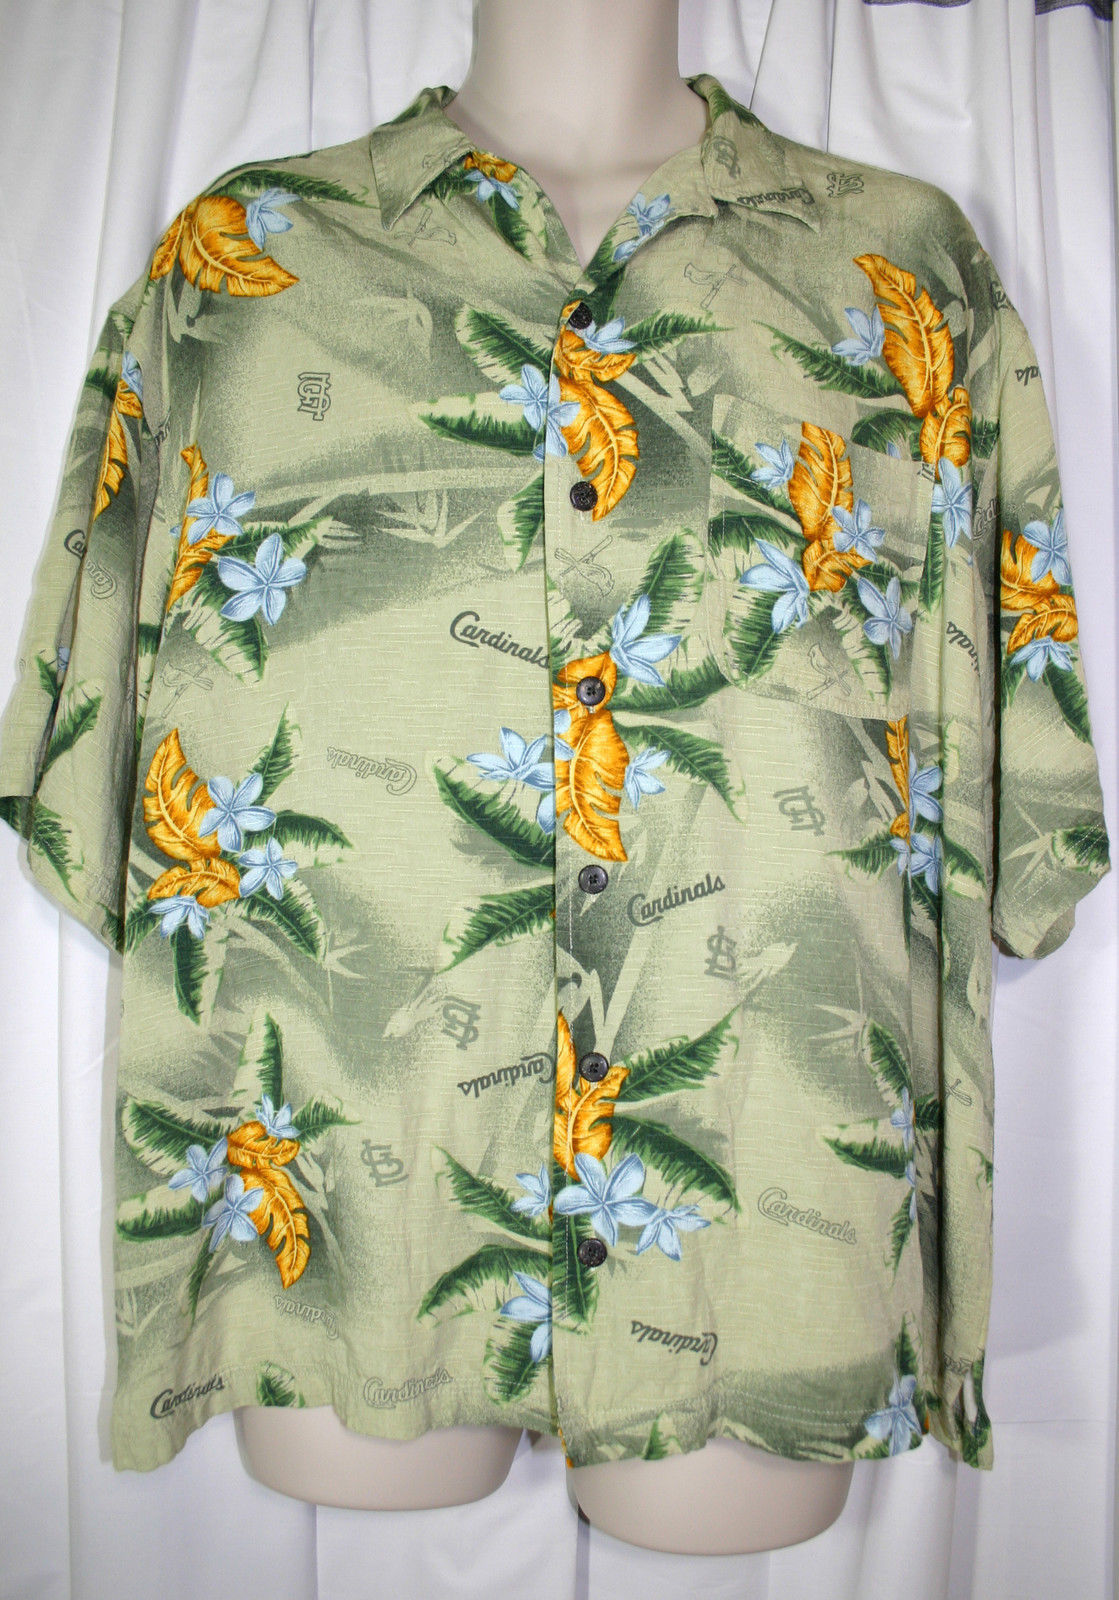 Primary image for Genuine Merchandise MLB St Louis Cardinals Green Floral Hawaiian Shirt Mens L